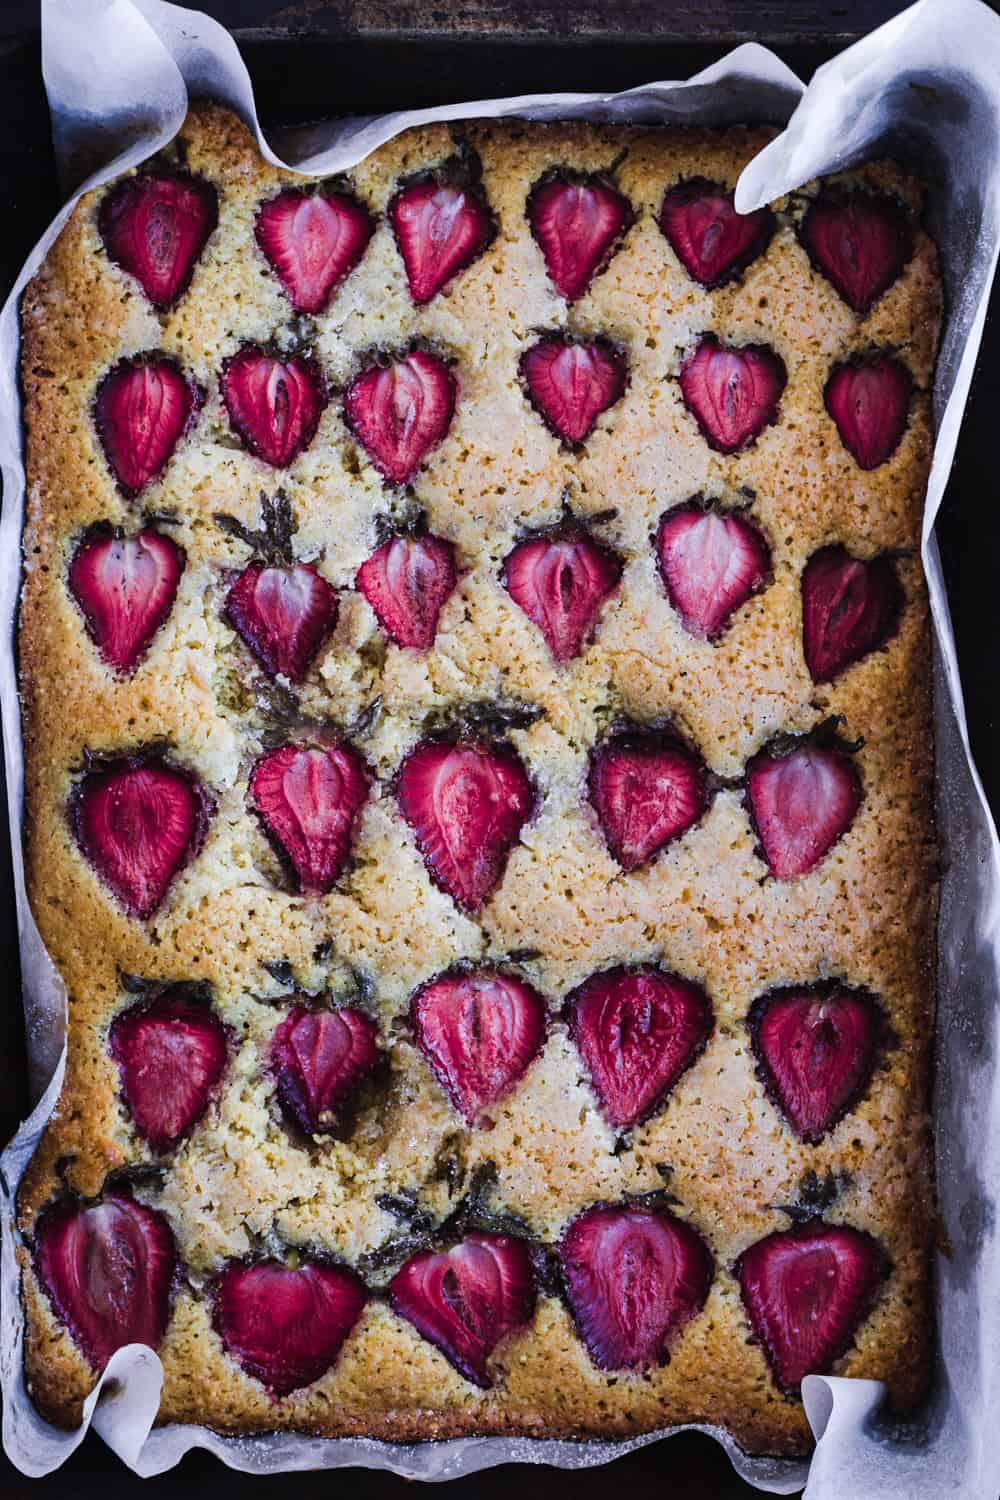 Strawberry snack cake straight out of the oven.